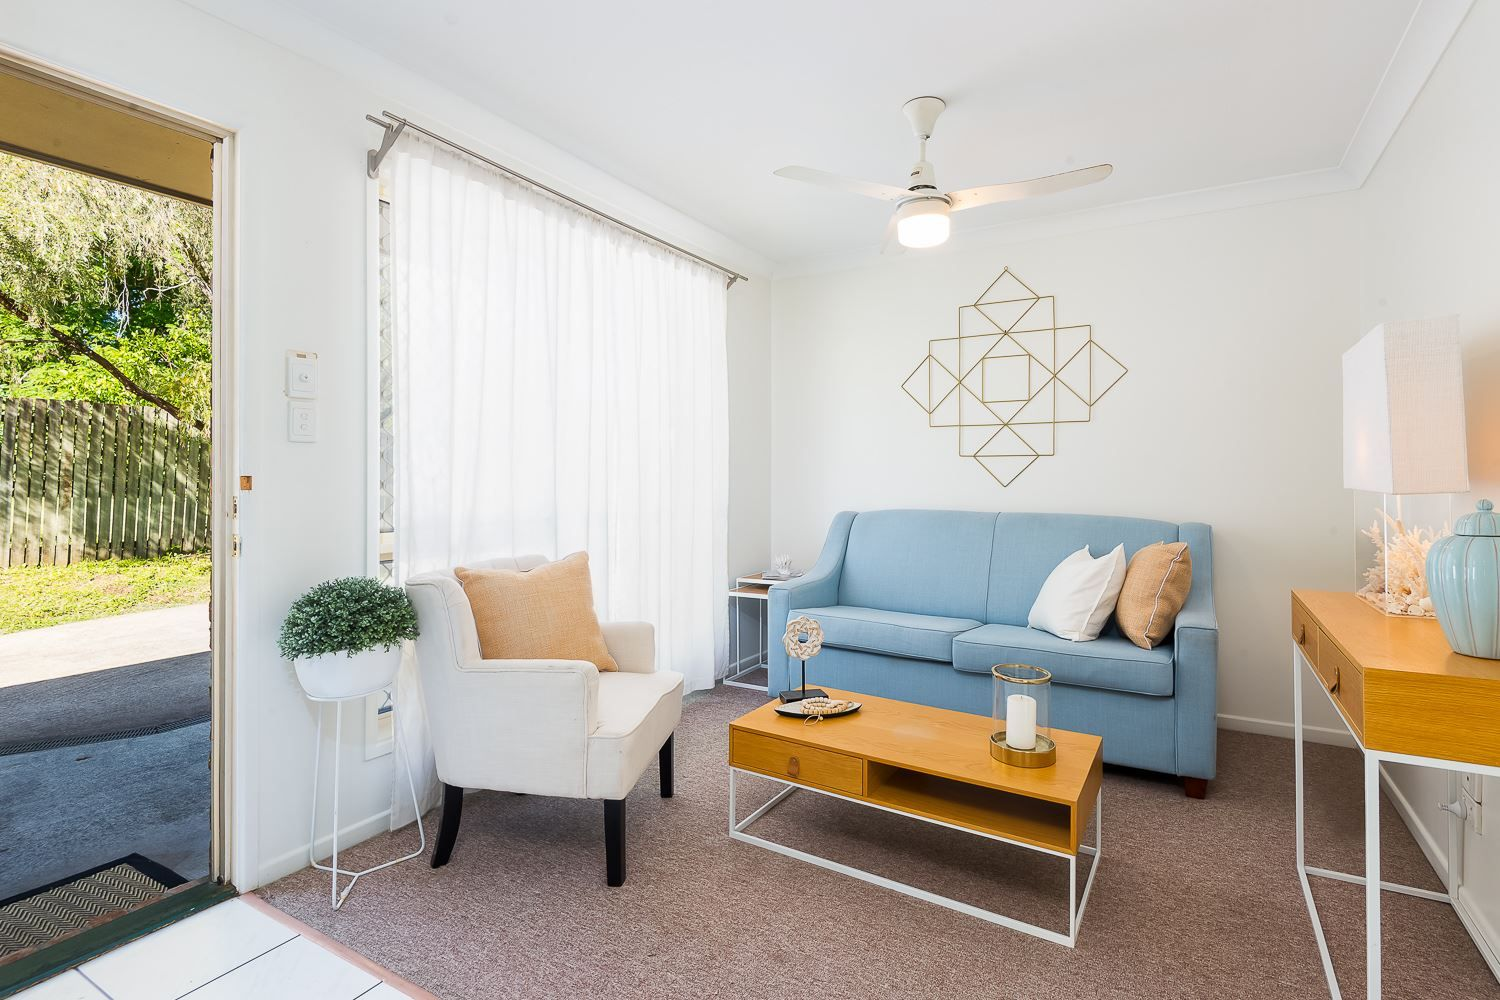 2/13A Merrell Street, North Booval QLD 4304, Image 2